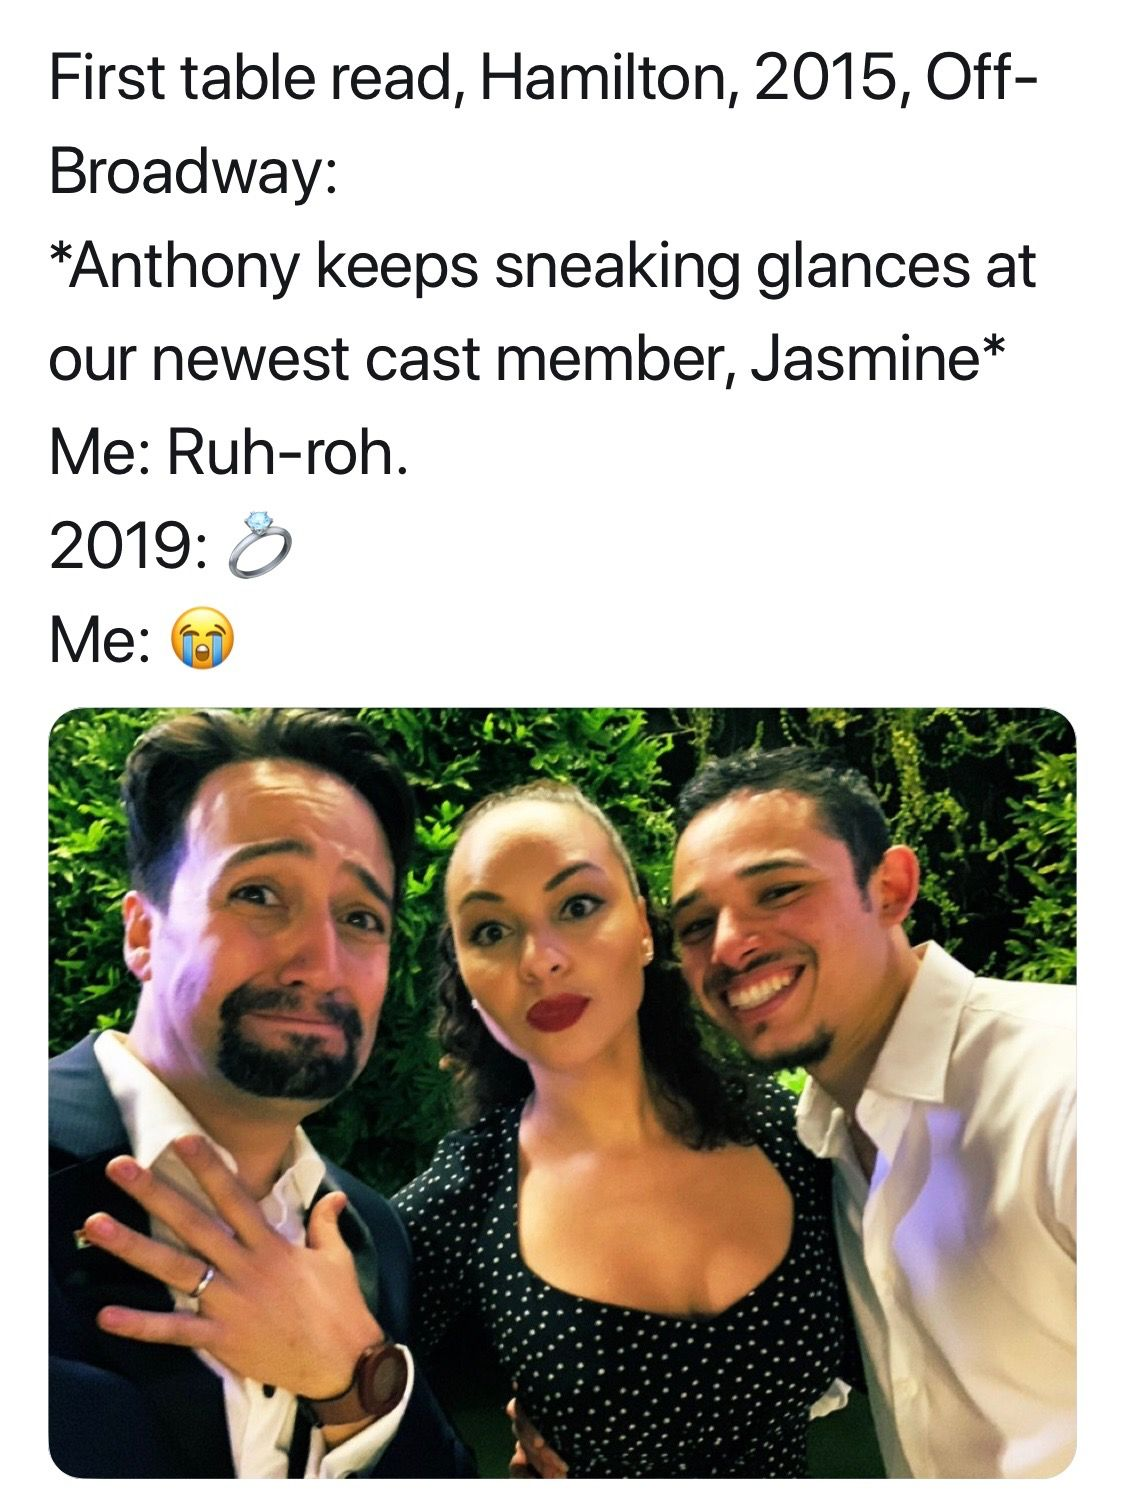 Pin By Fandomaddict On Broadway Musicals Hamilton Funny Hamilton Hamilton Musical